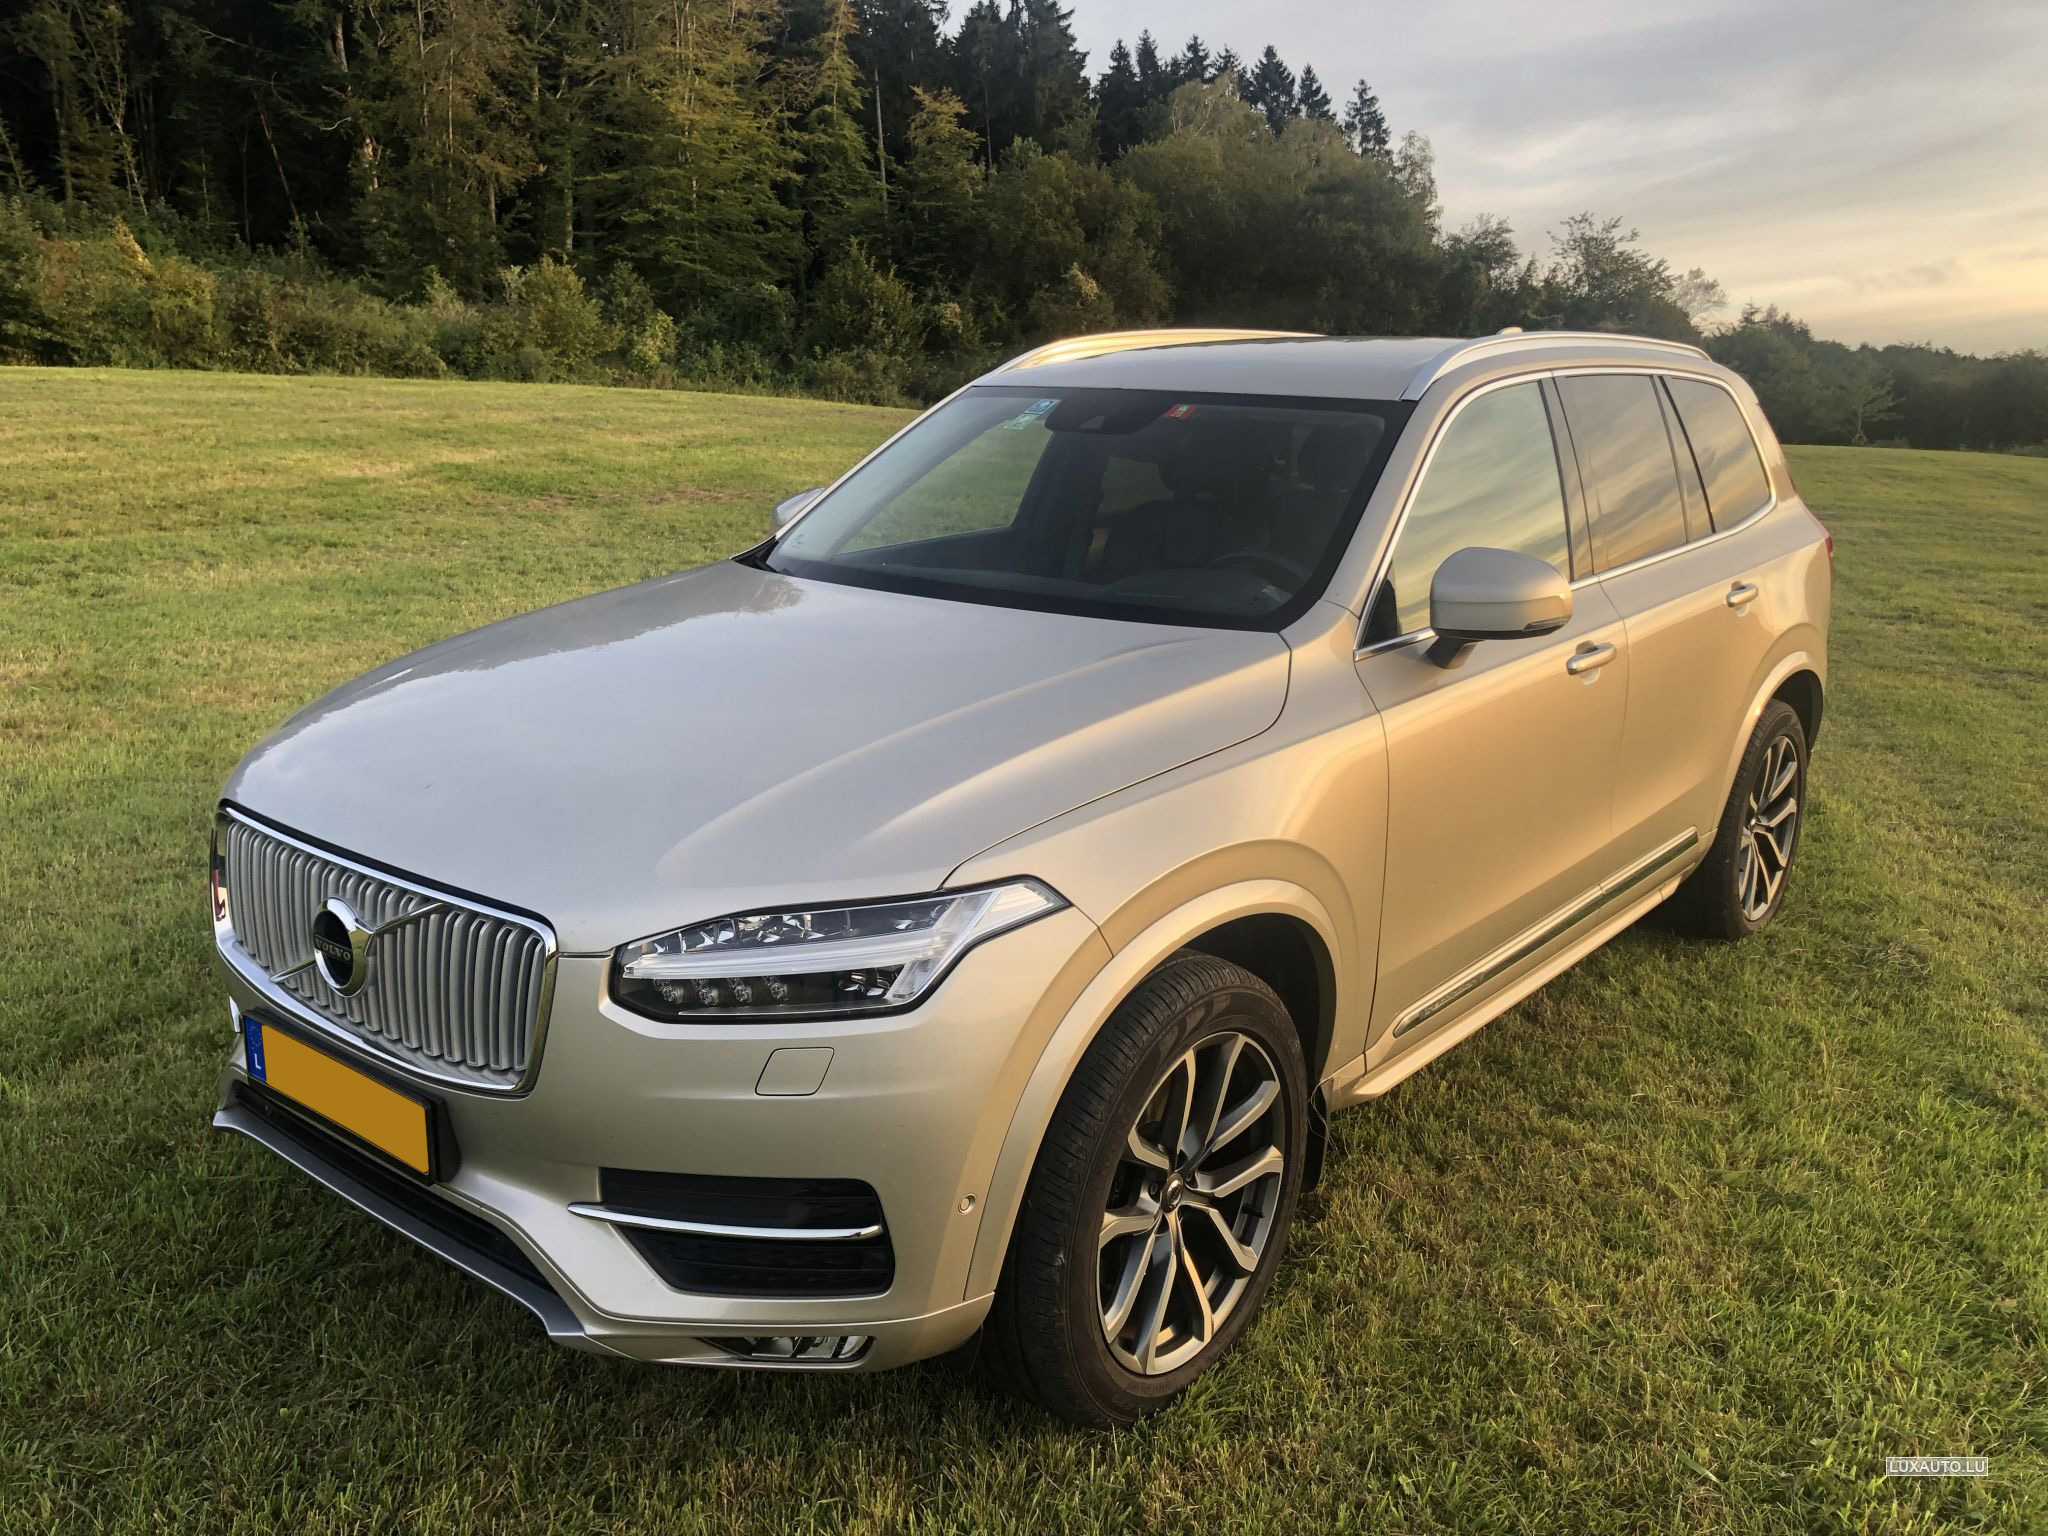 Volvo XC90 2.0 D5 225 AWD Geartronic